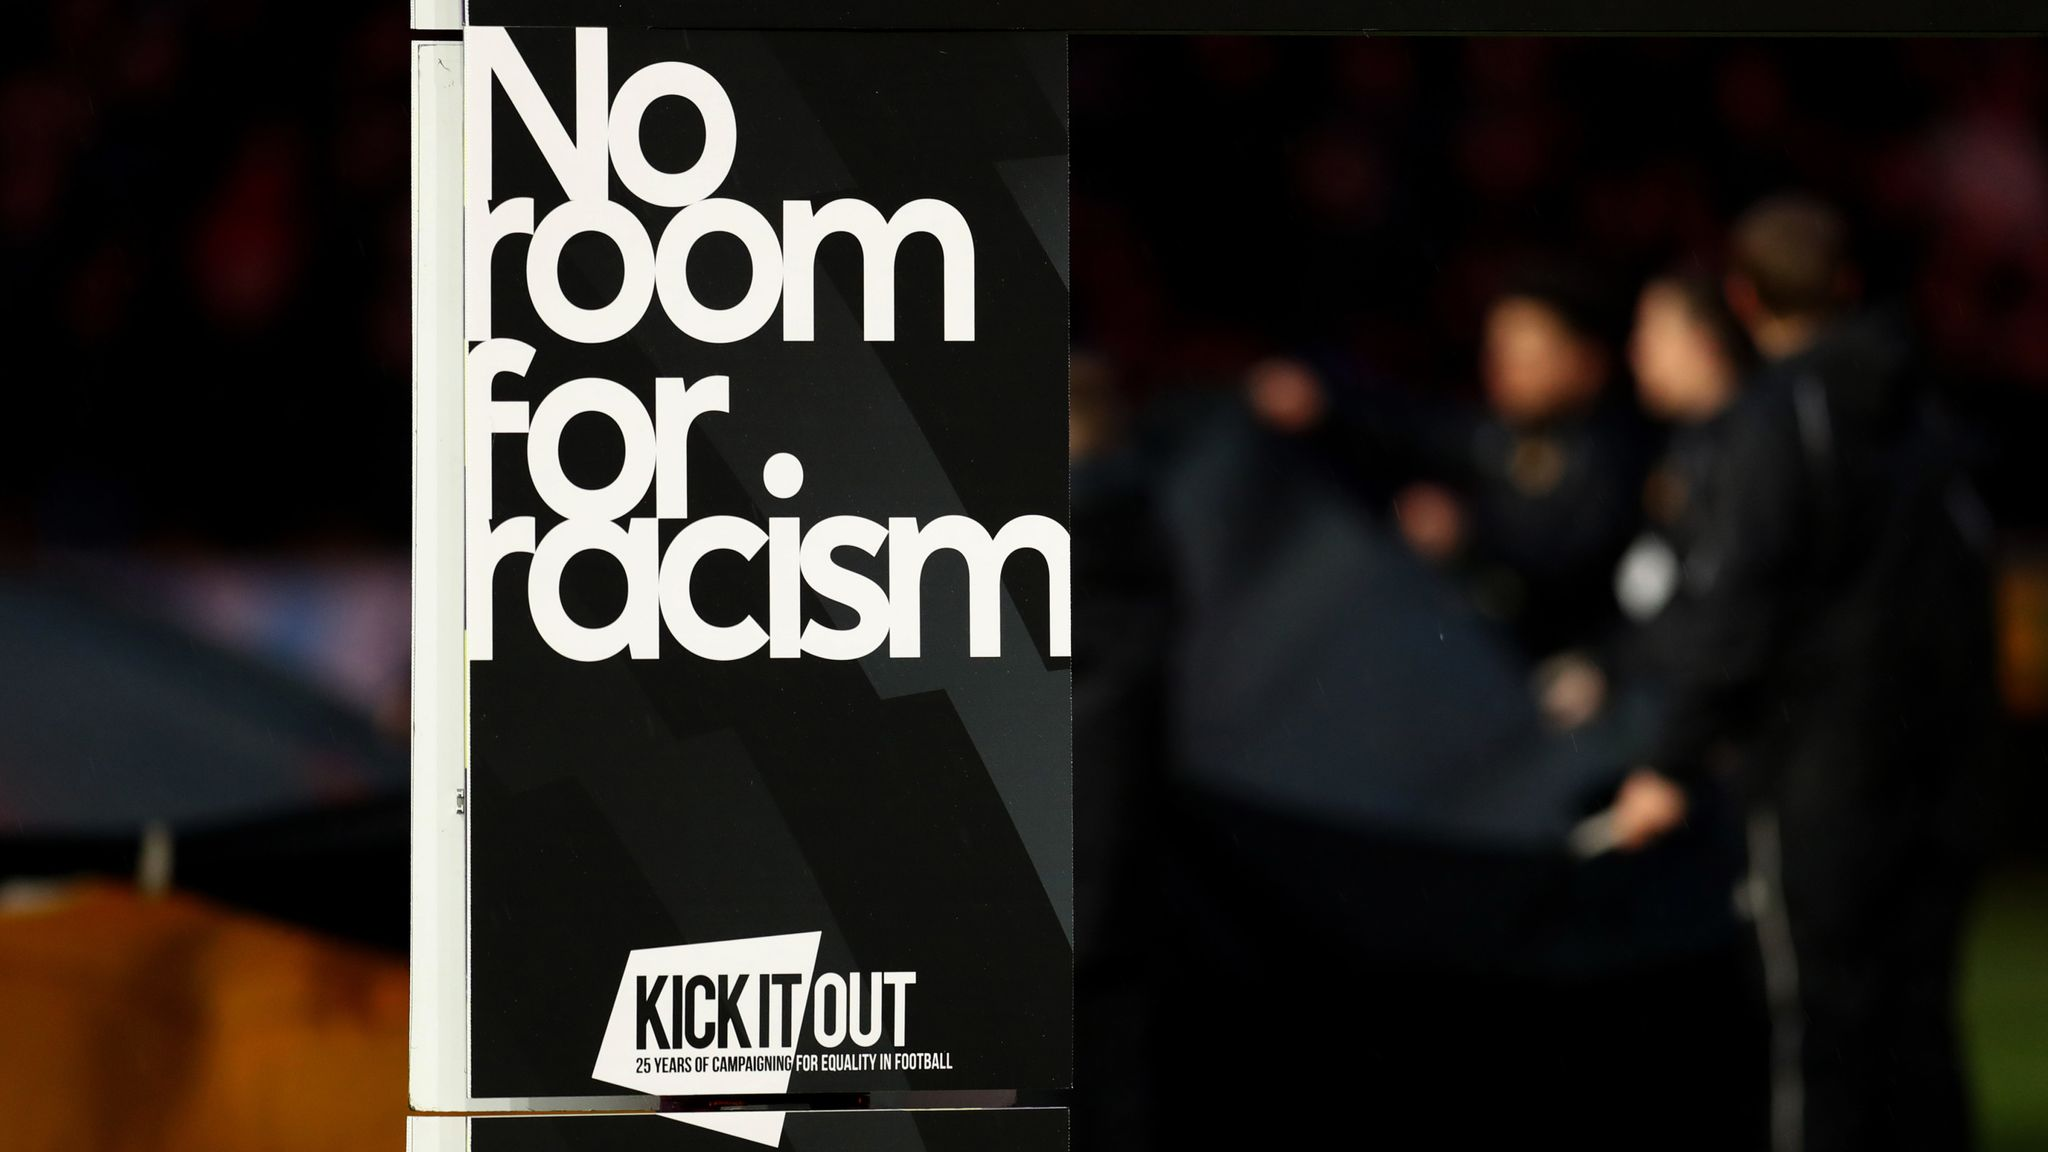 Fighting racism in football needs urgent action says Graeme Souness